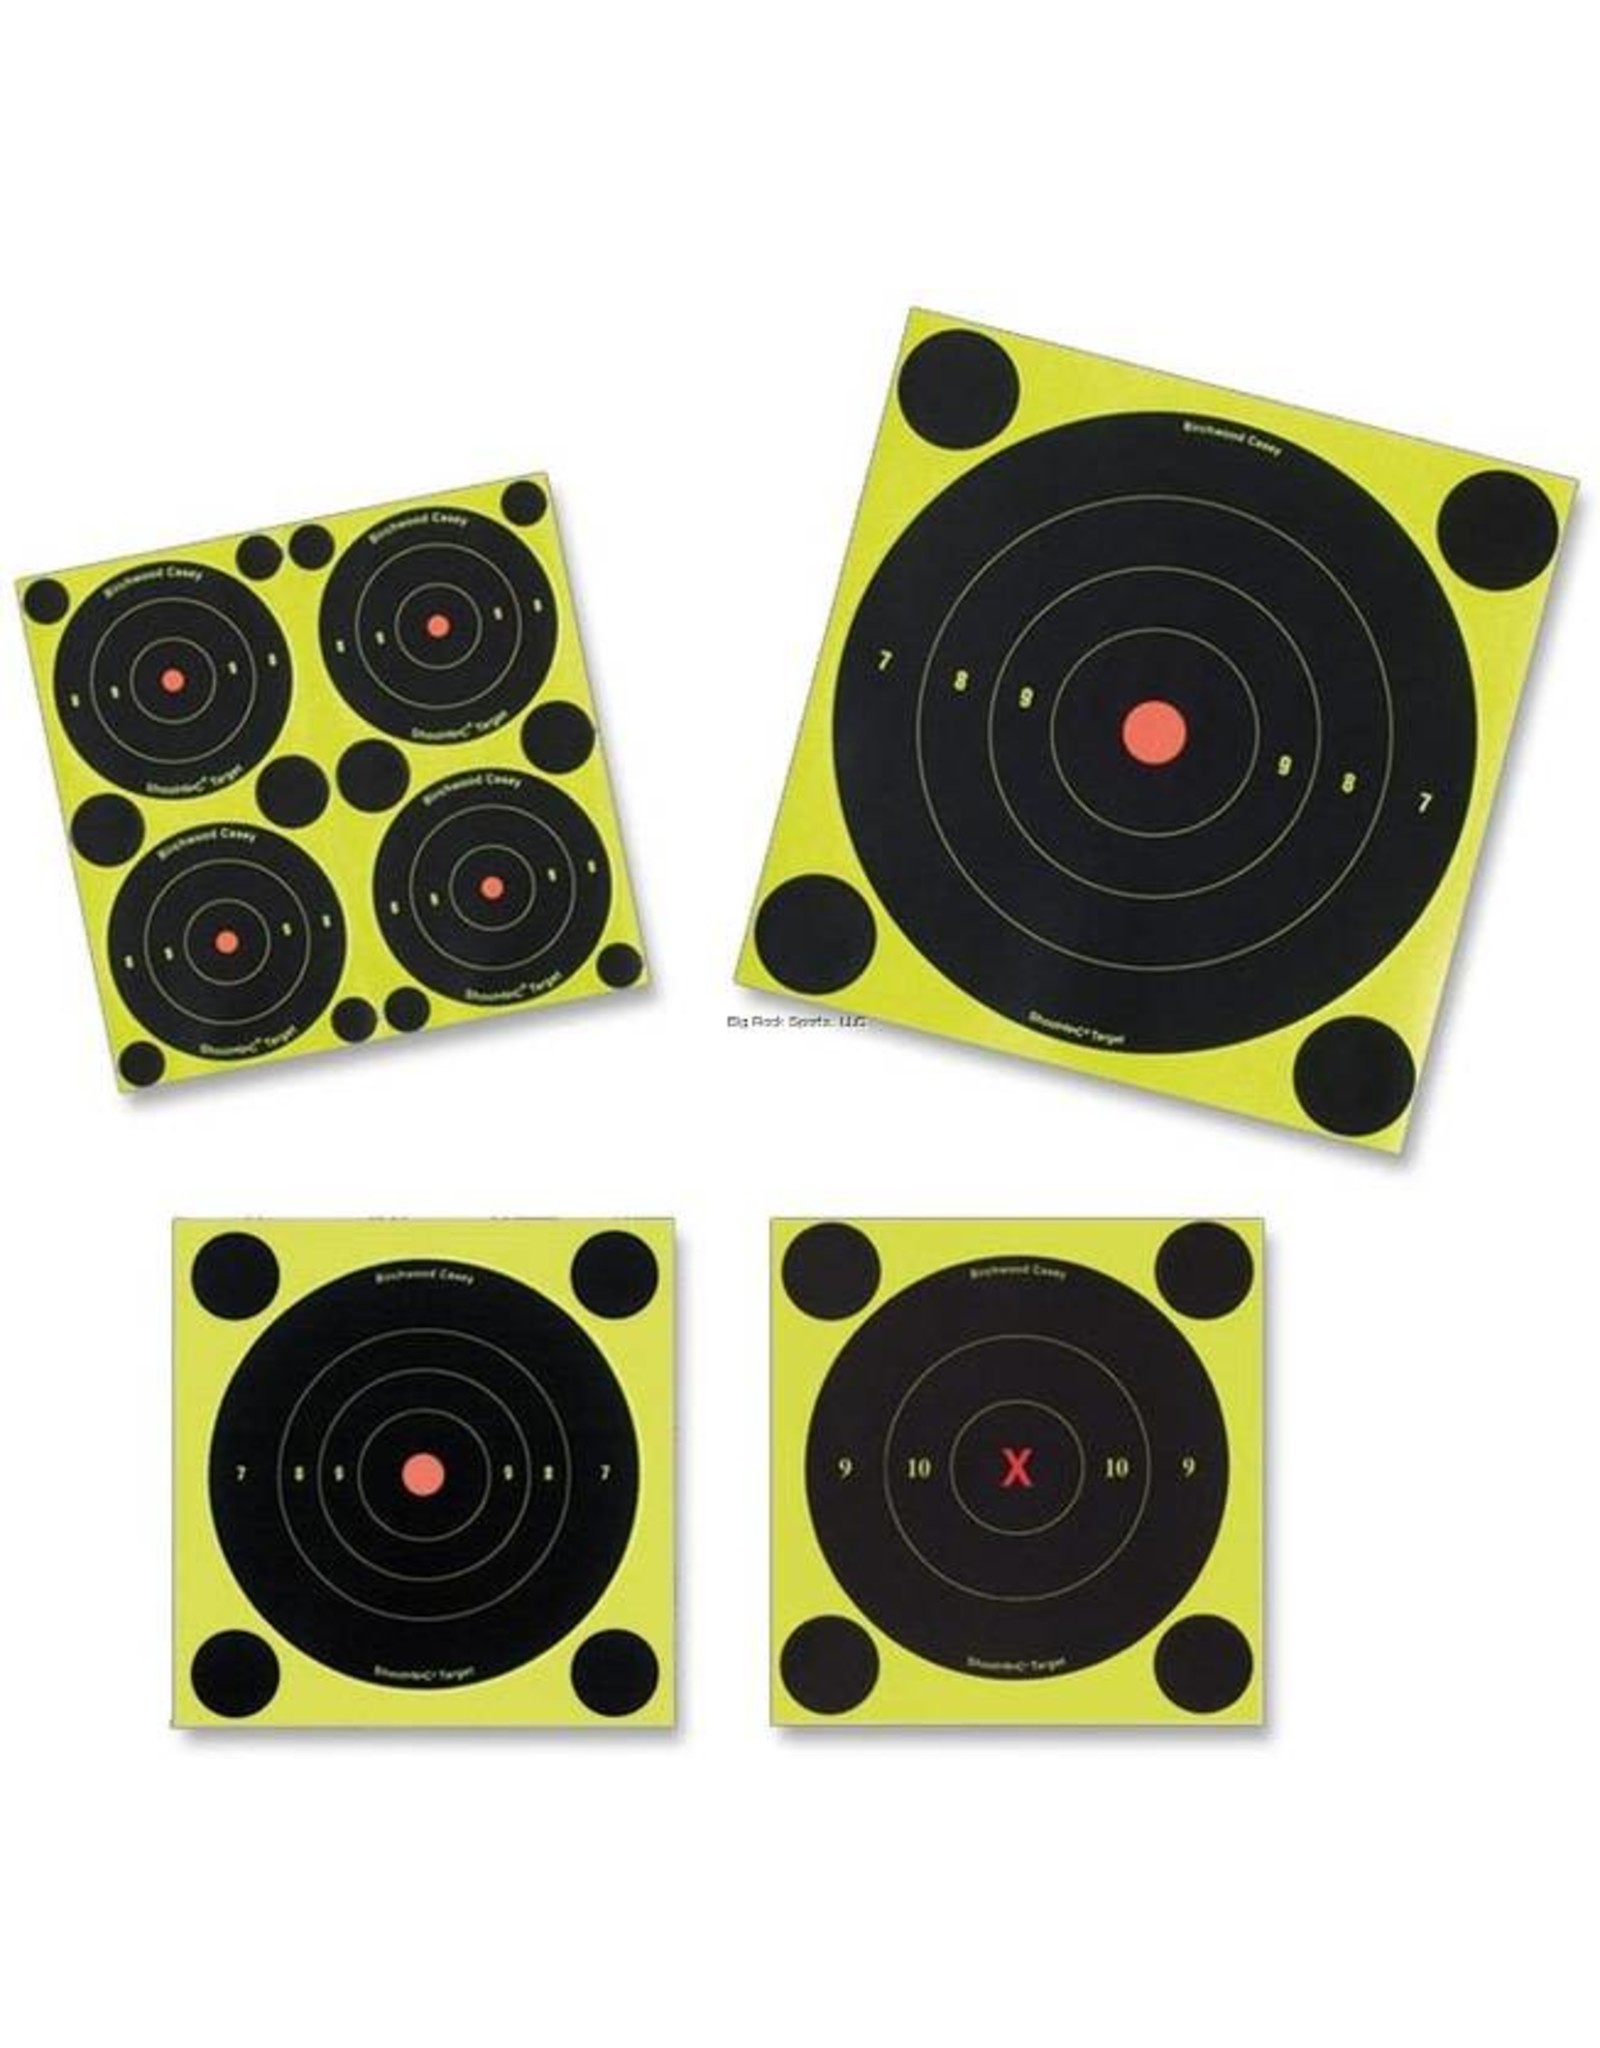 "BIRCHWOOD CASEY Shoot•N•C 3"" Bull's-eye, 48 targets"